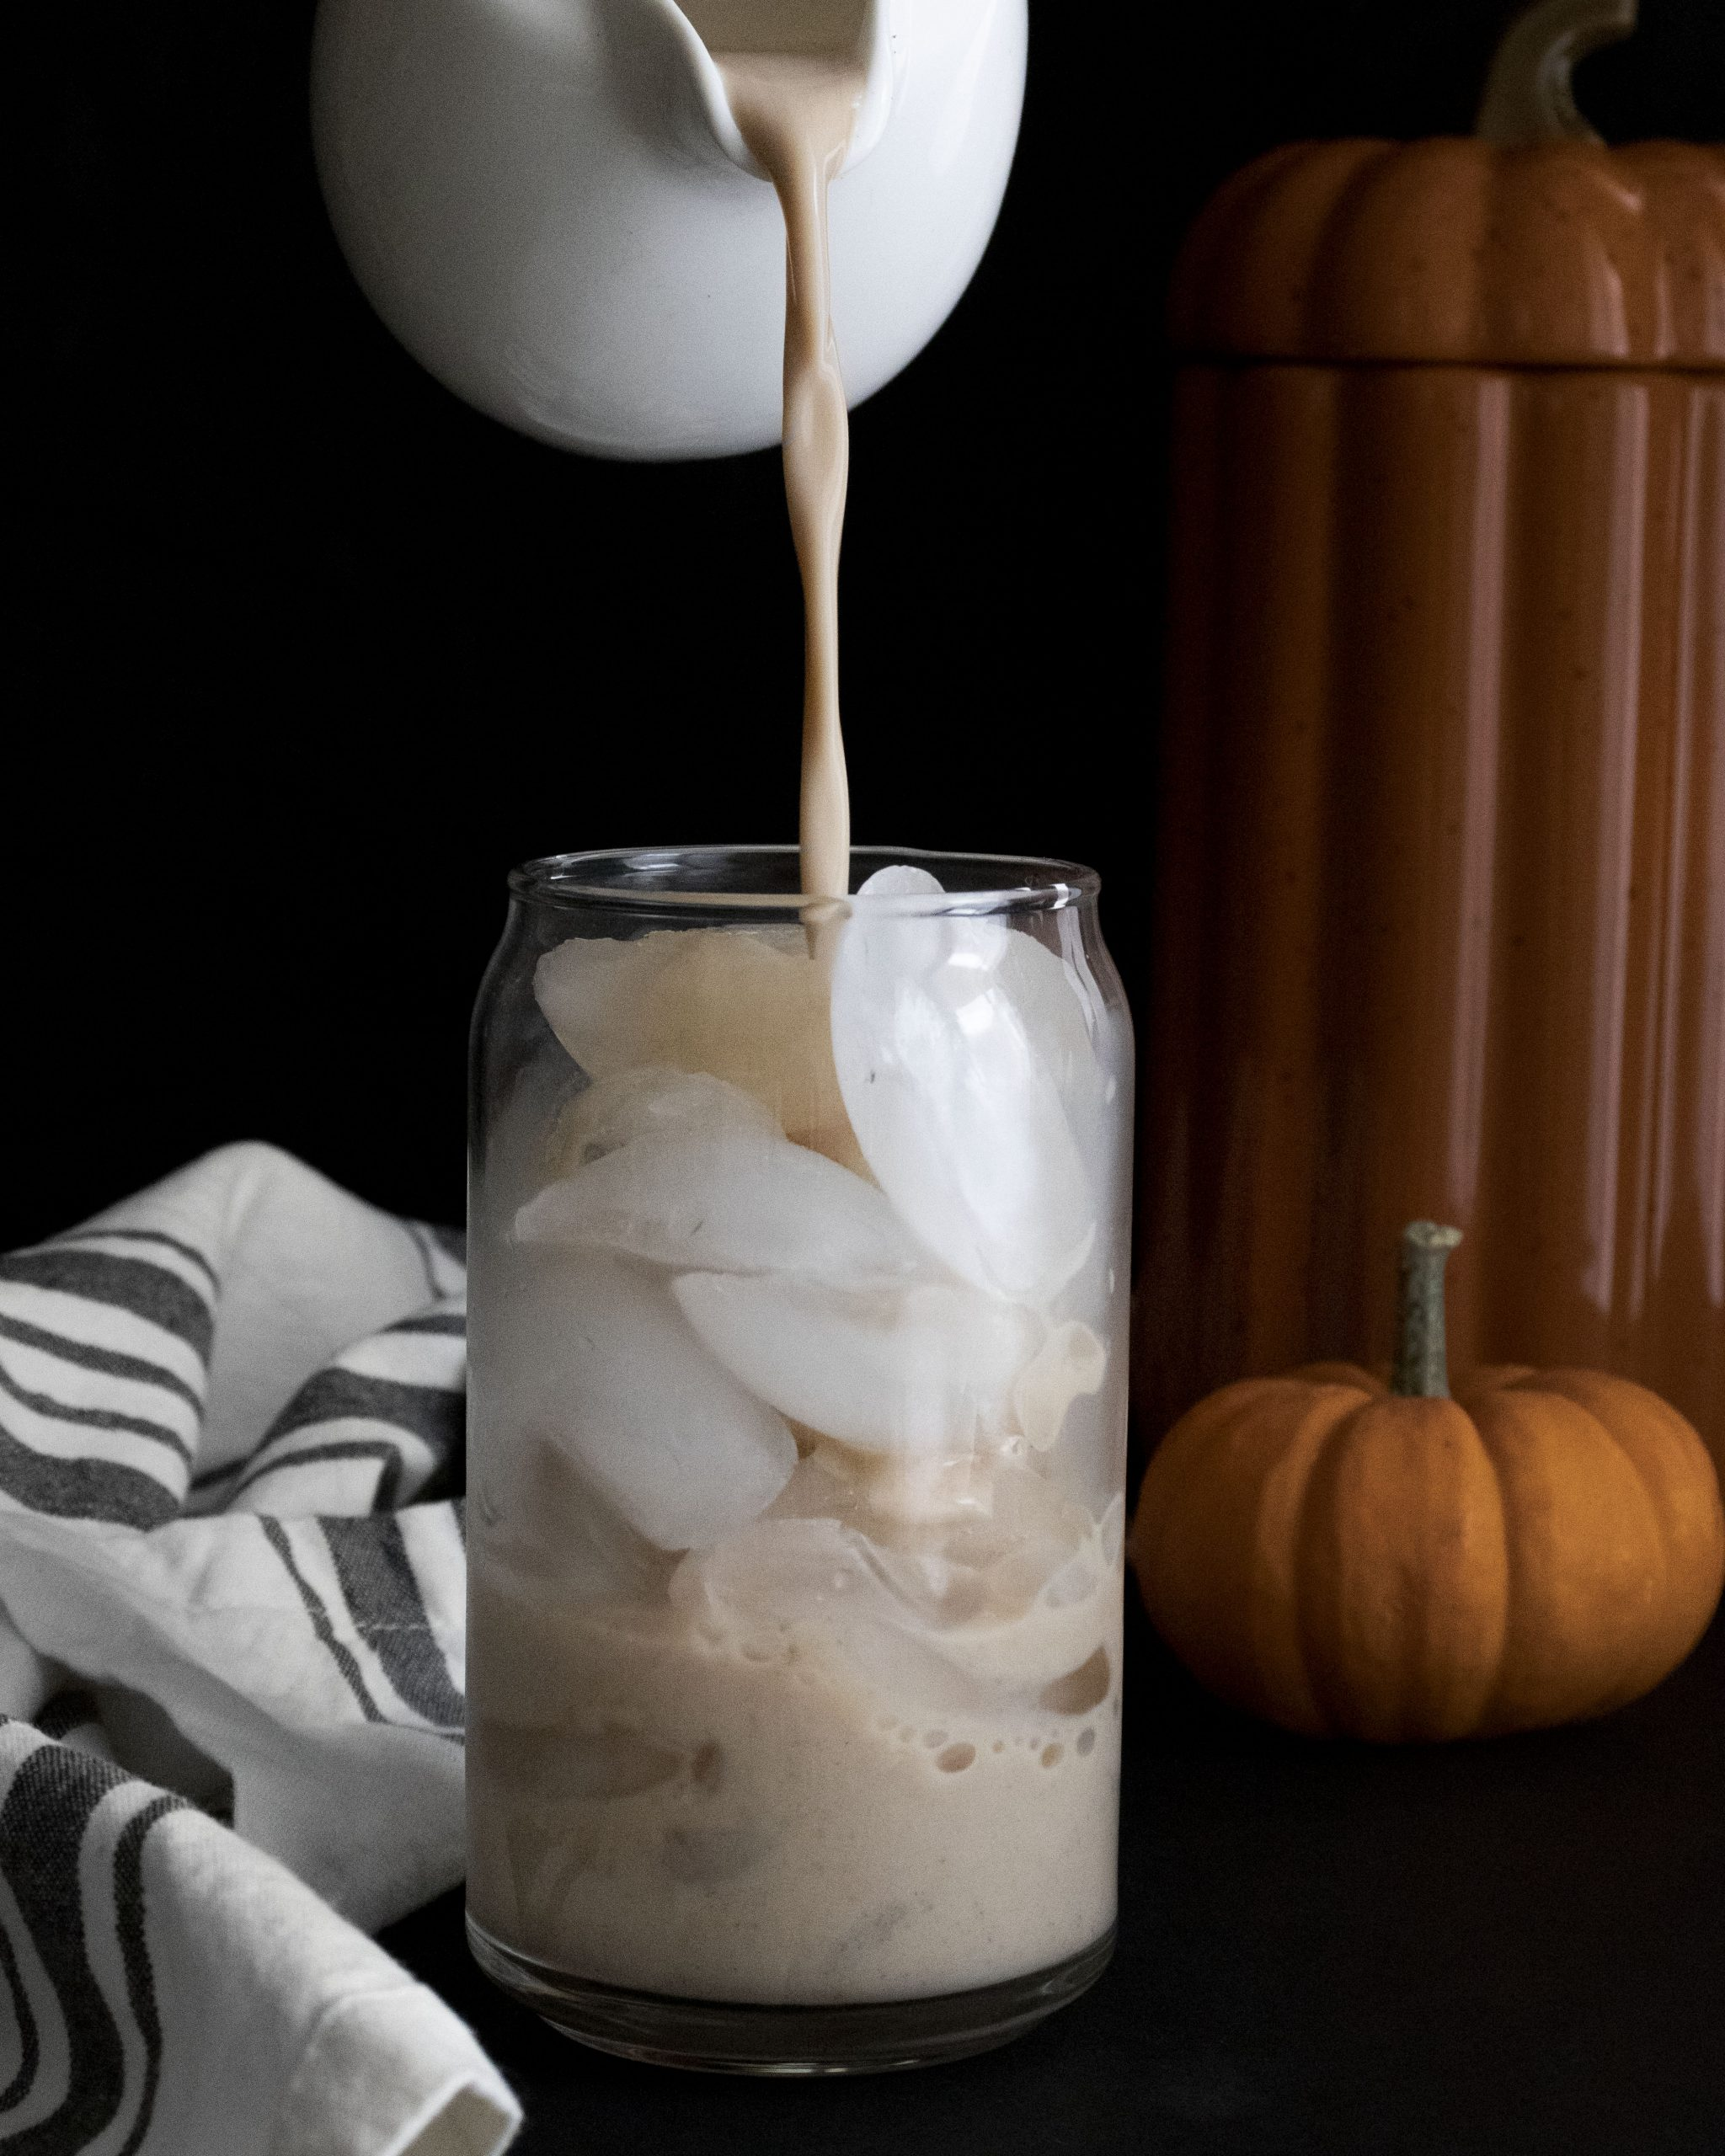 It's officially fall and if you're craving a pumpkin coffee, check out this easy Whipped Pumpkin Coffee Recipe with hot and cold directions. #whippedcoffee #pumpkincoffee #pumpkinlatte #whippedcoffee #whippedlatte